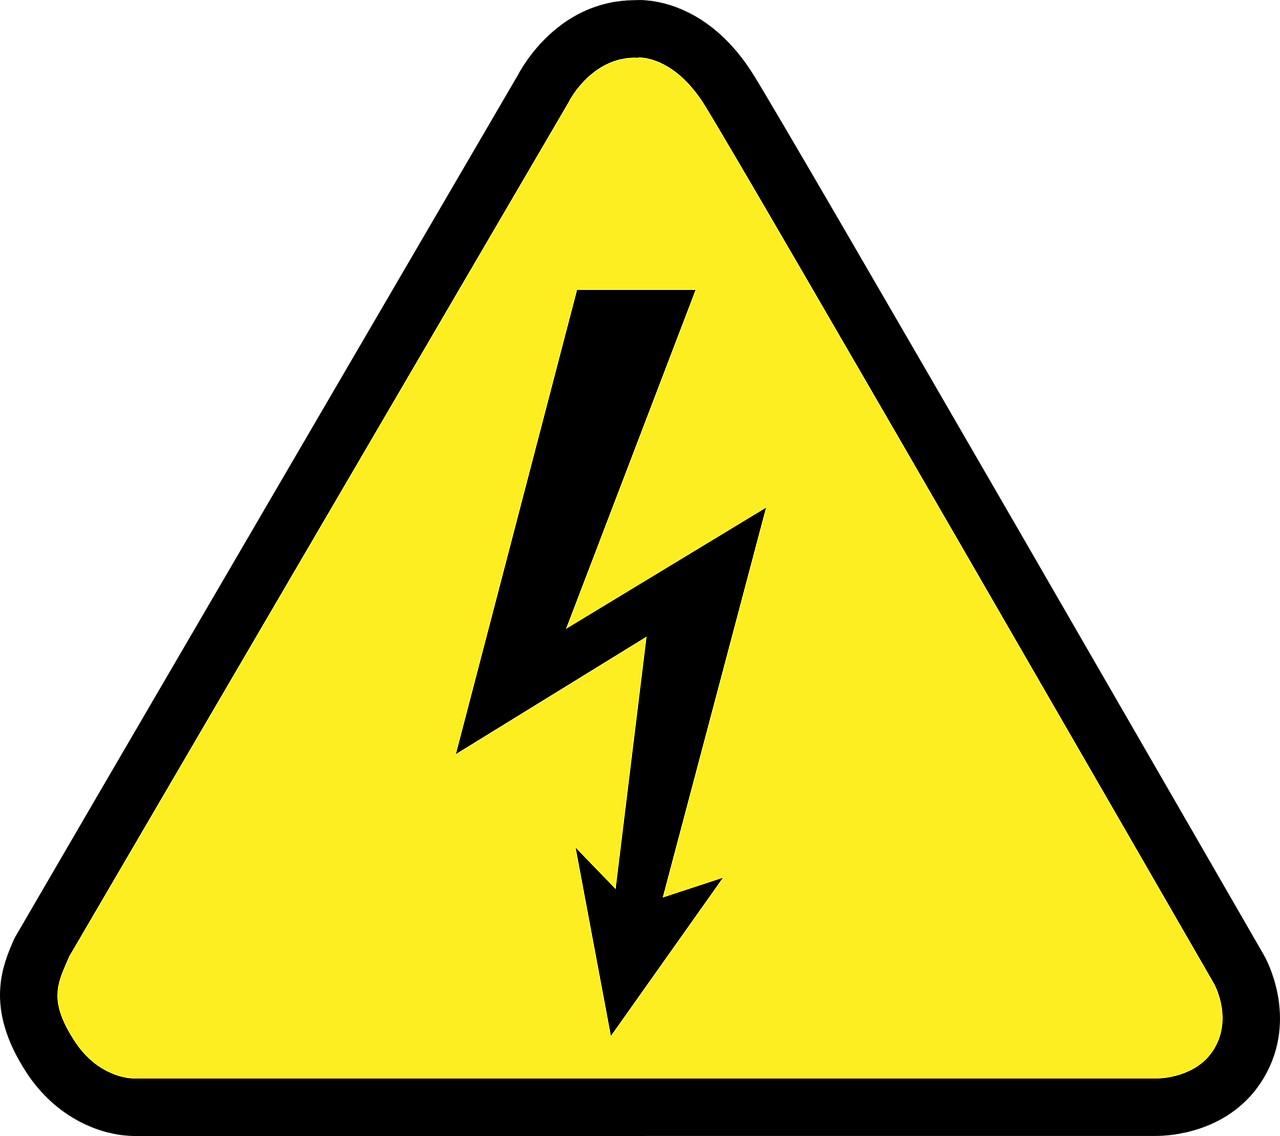 No One Wants an Electric Shock – Literally and Figuratively